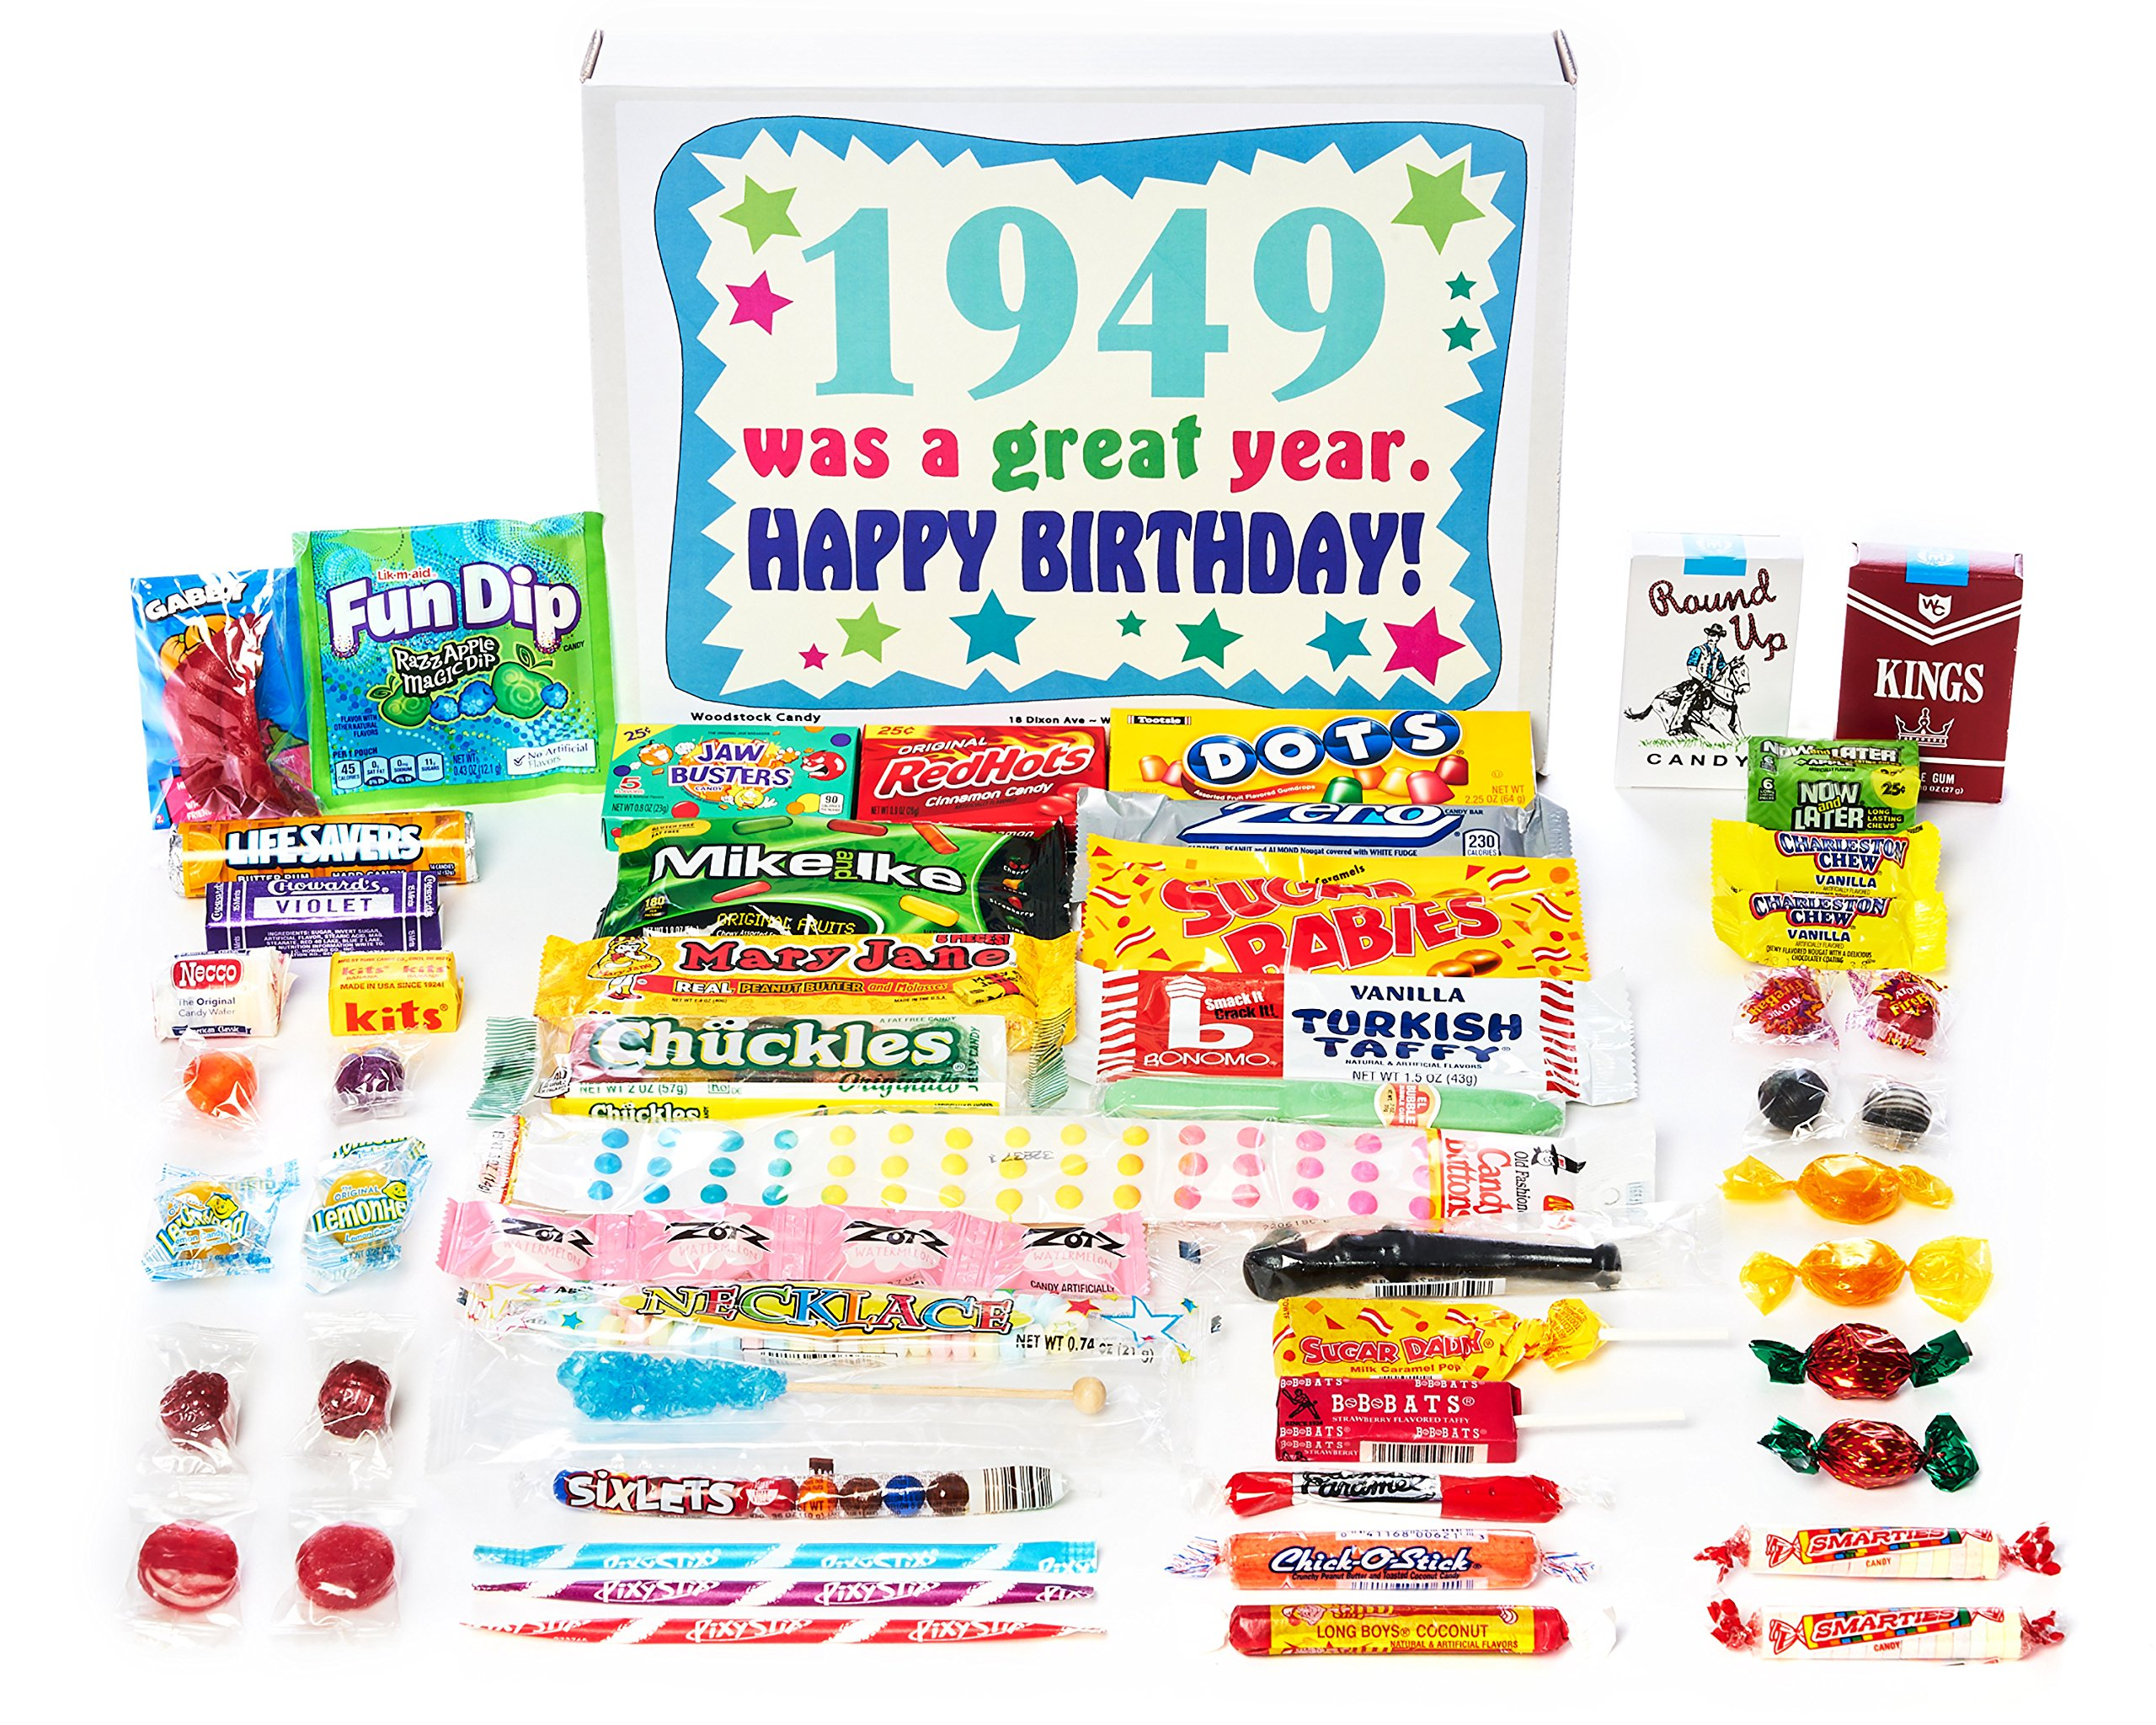 Woodstock Candy ~ 1949 70th Birthday Gift Box of Nostalgic Retro Candy Assortment from Childhood for 70 Year Old Man or Woman Born 1949 by Woodstock Candy